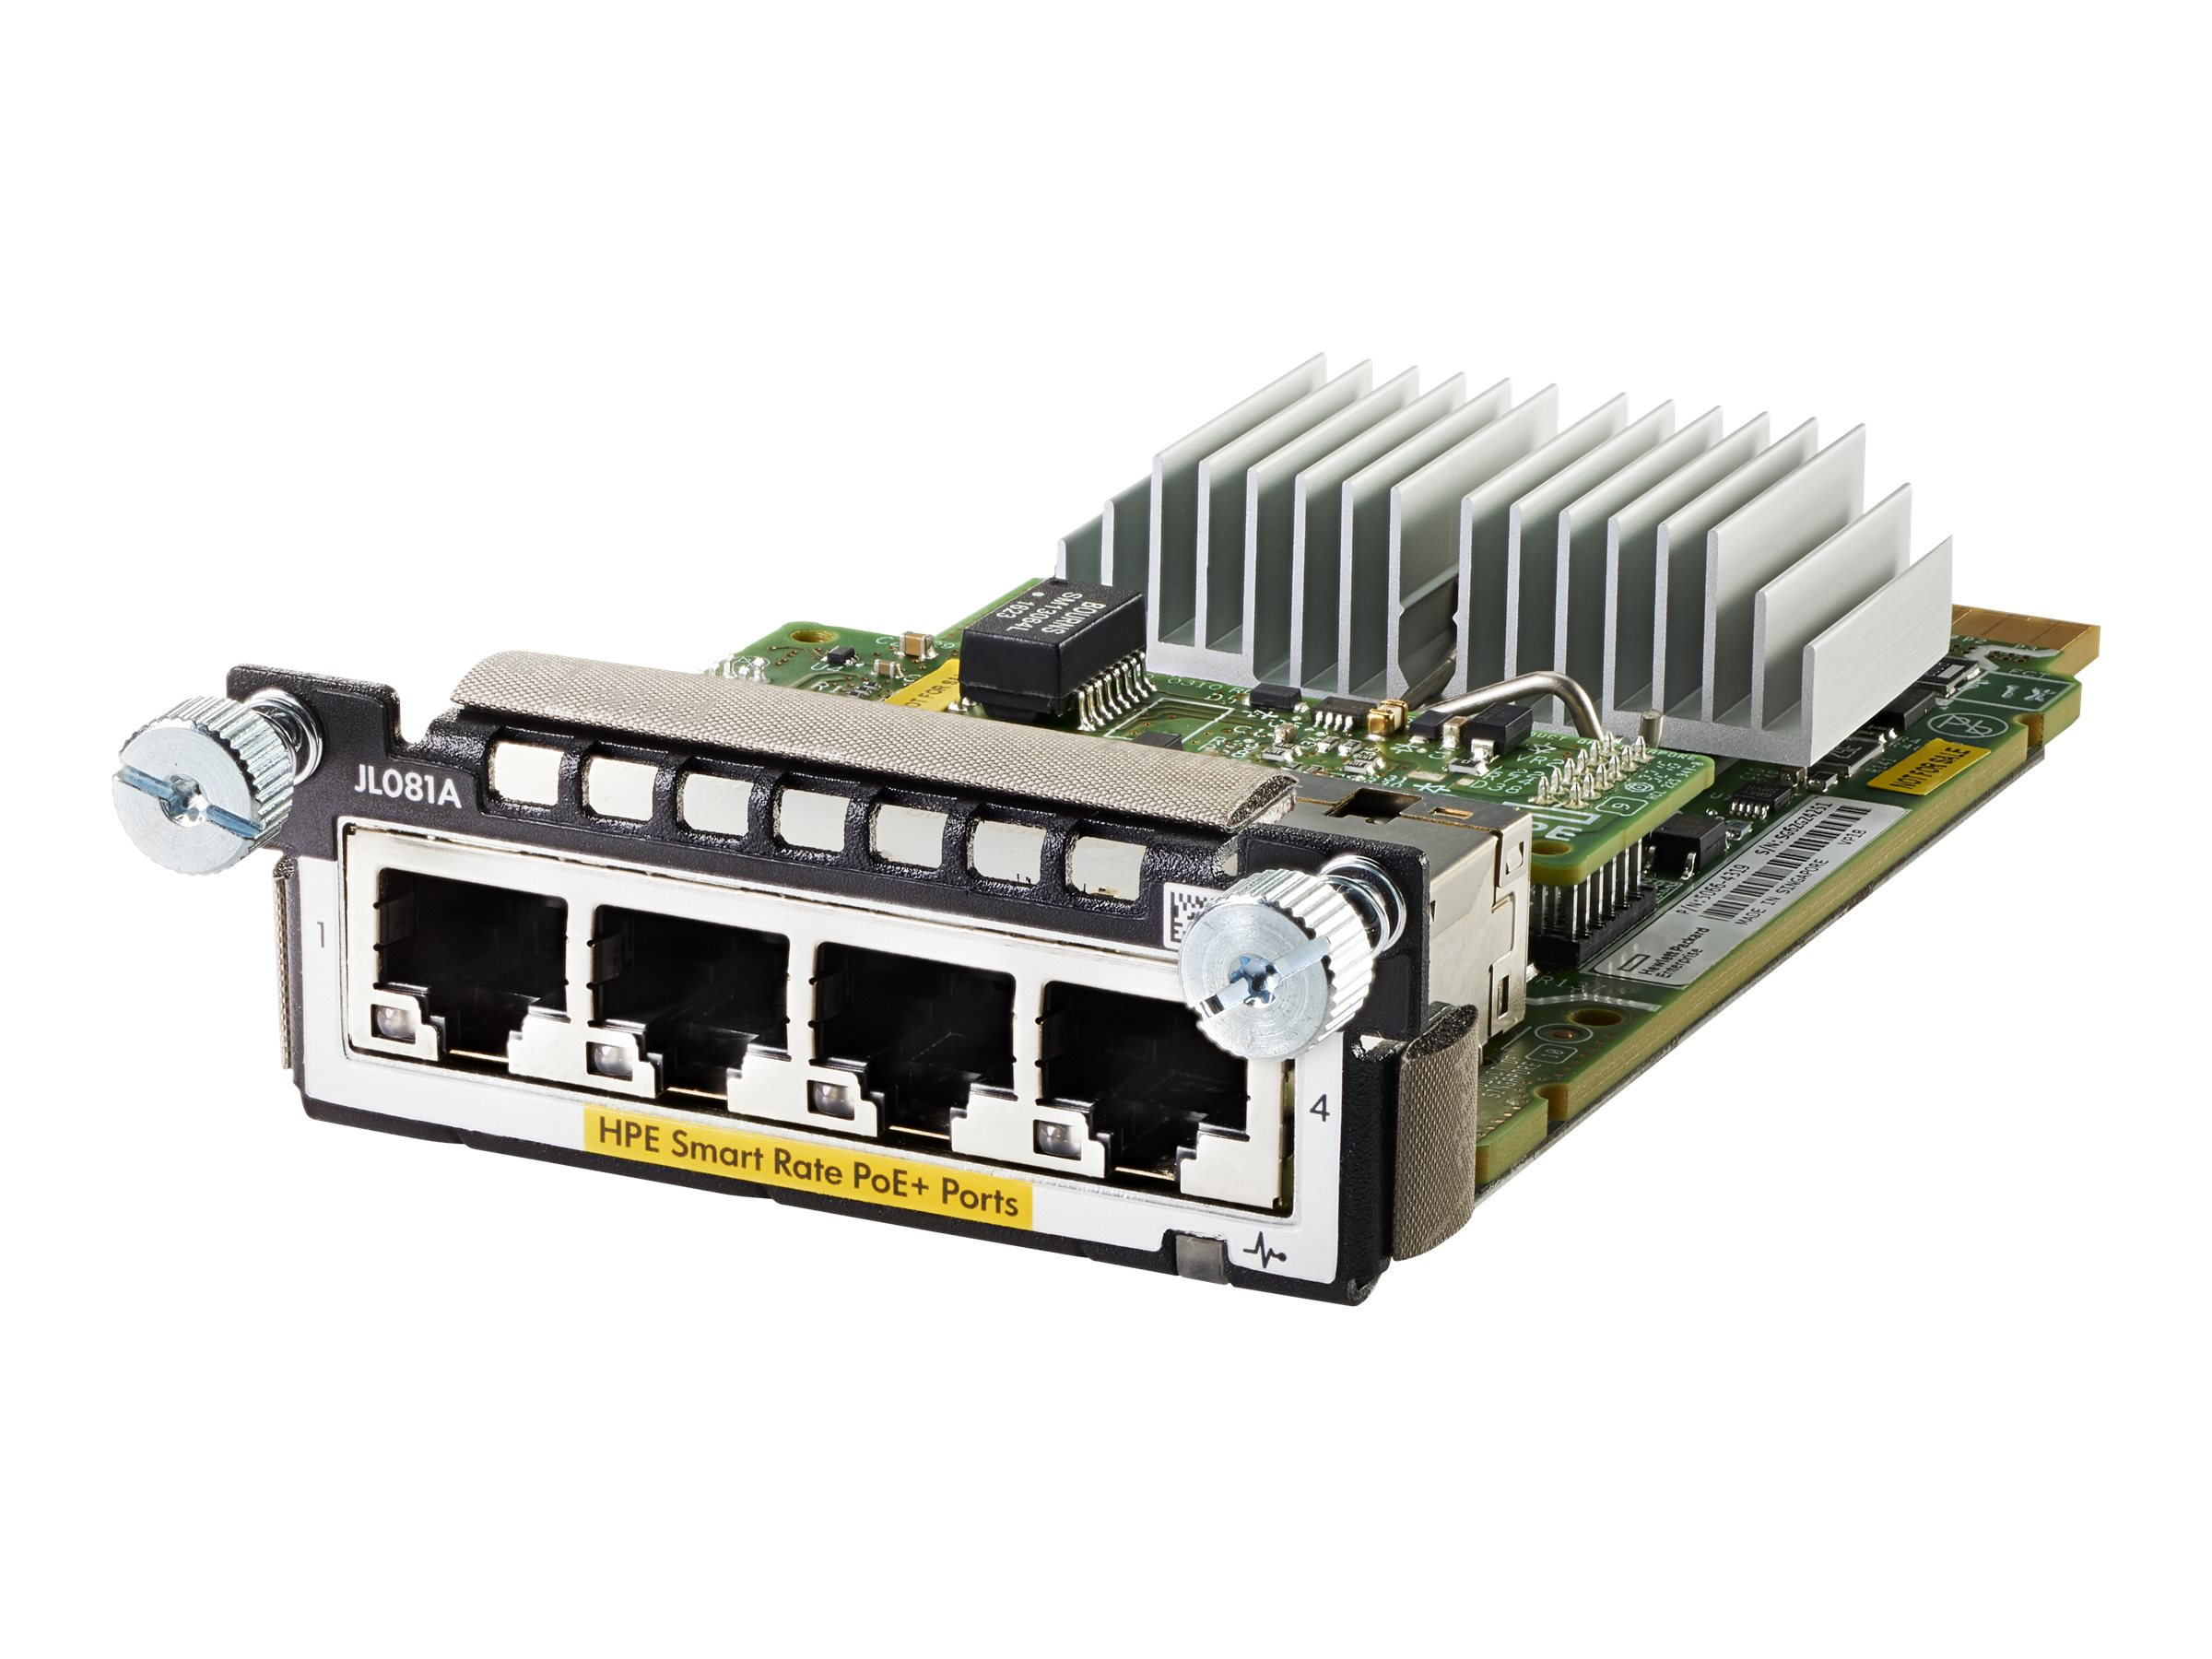 HPE Aruba 3810M/2930M Smart Rate Module - expansion module - 1/2.5/5/10GBase-T (PoE+) x 4